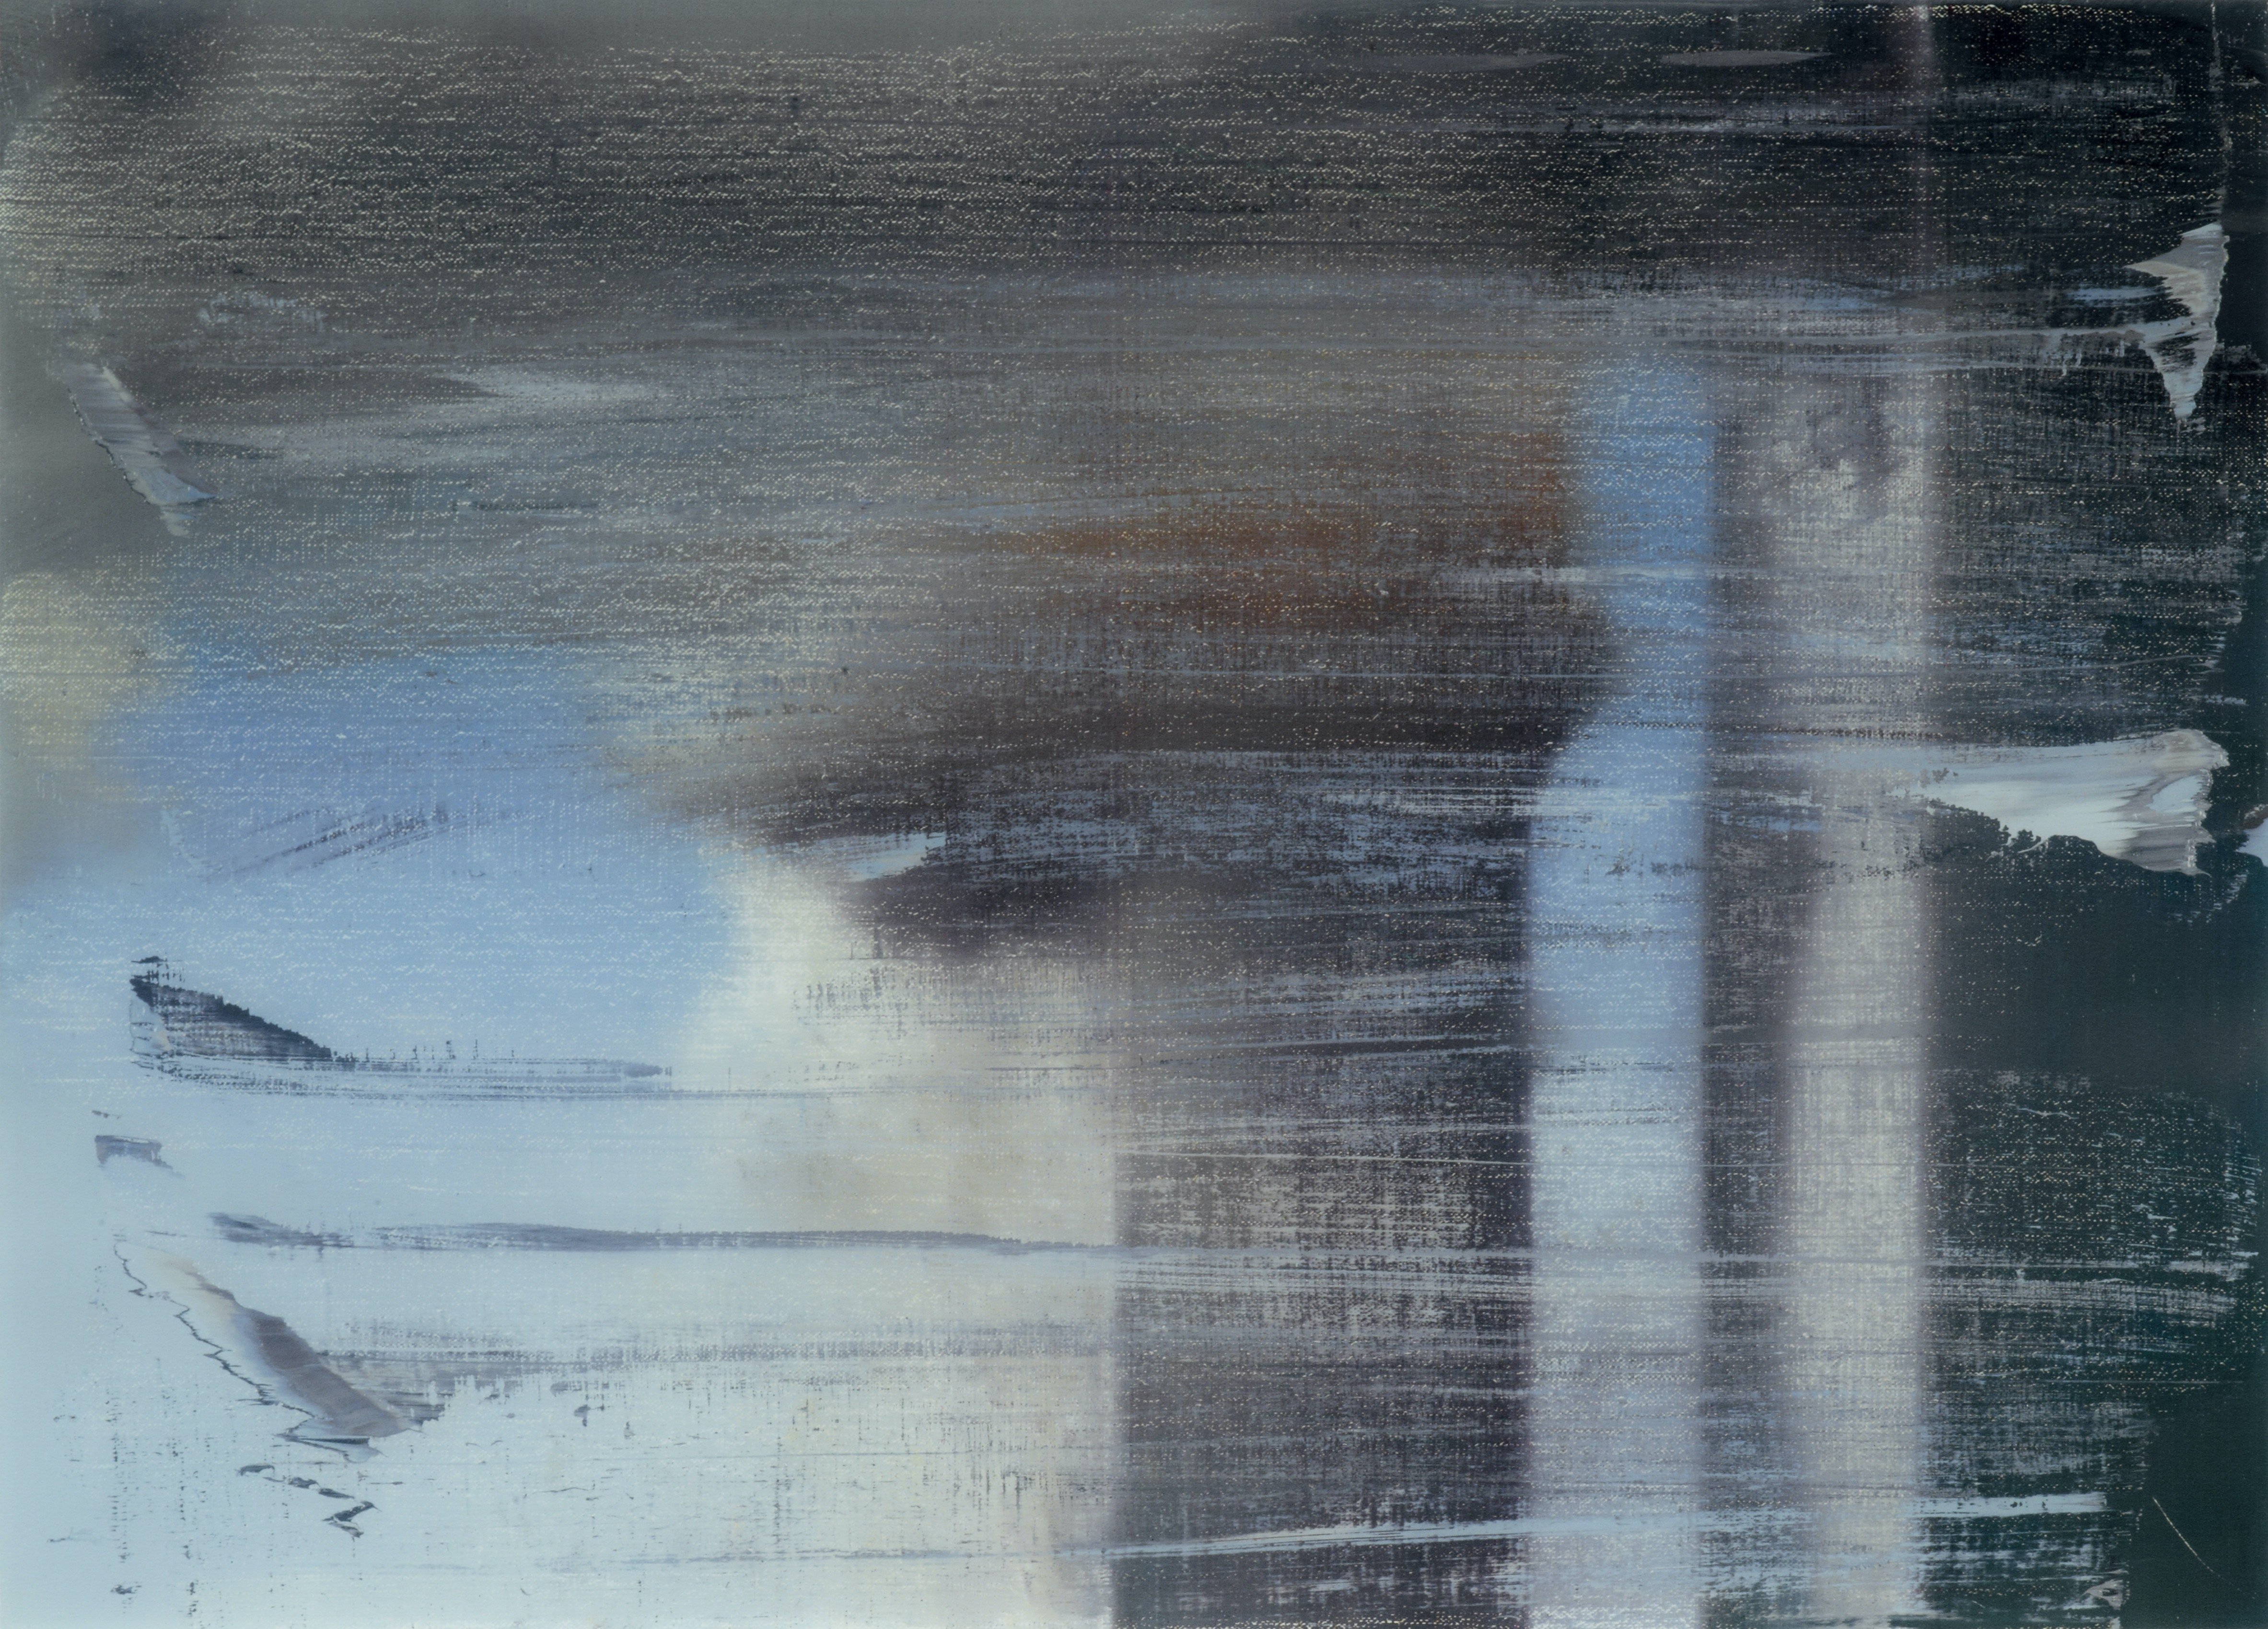 a biography of gerhard ritcher Biography gerhard richter was born in dresden in 1932 and in 1961, when he had completed his studies in east germany, he moved to west germany.